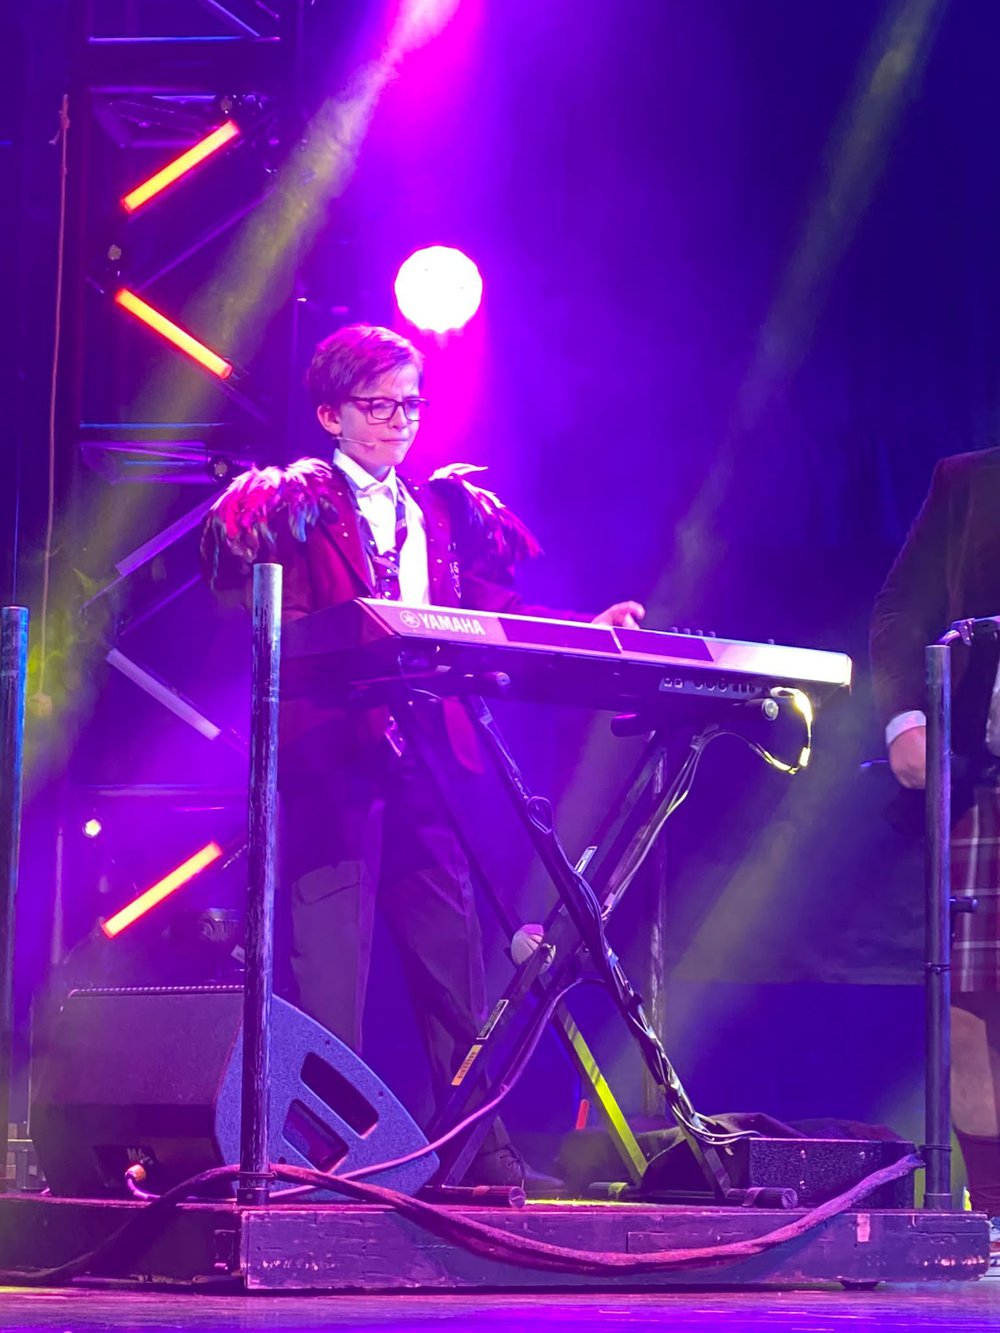 Former GOSH patient, Oliver, as Lawrence in School of Rock the Musical, plays the keyboard in costume, in a live performance.